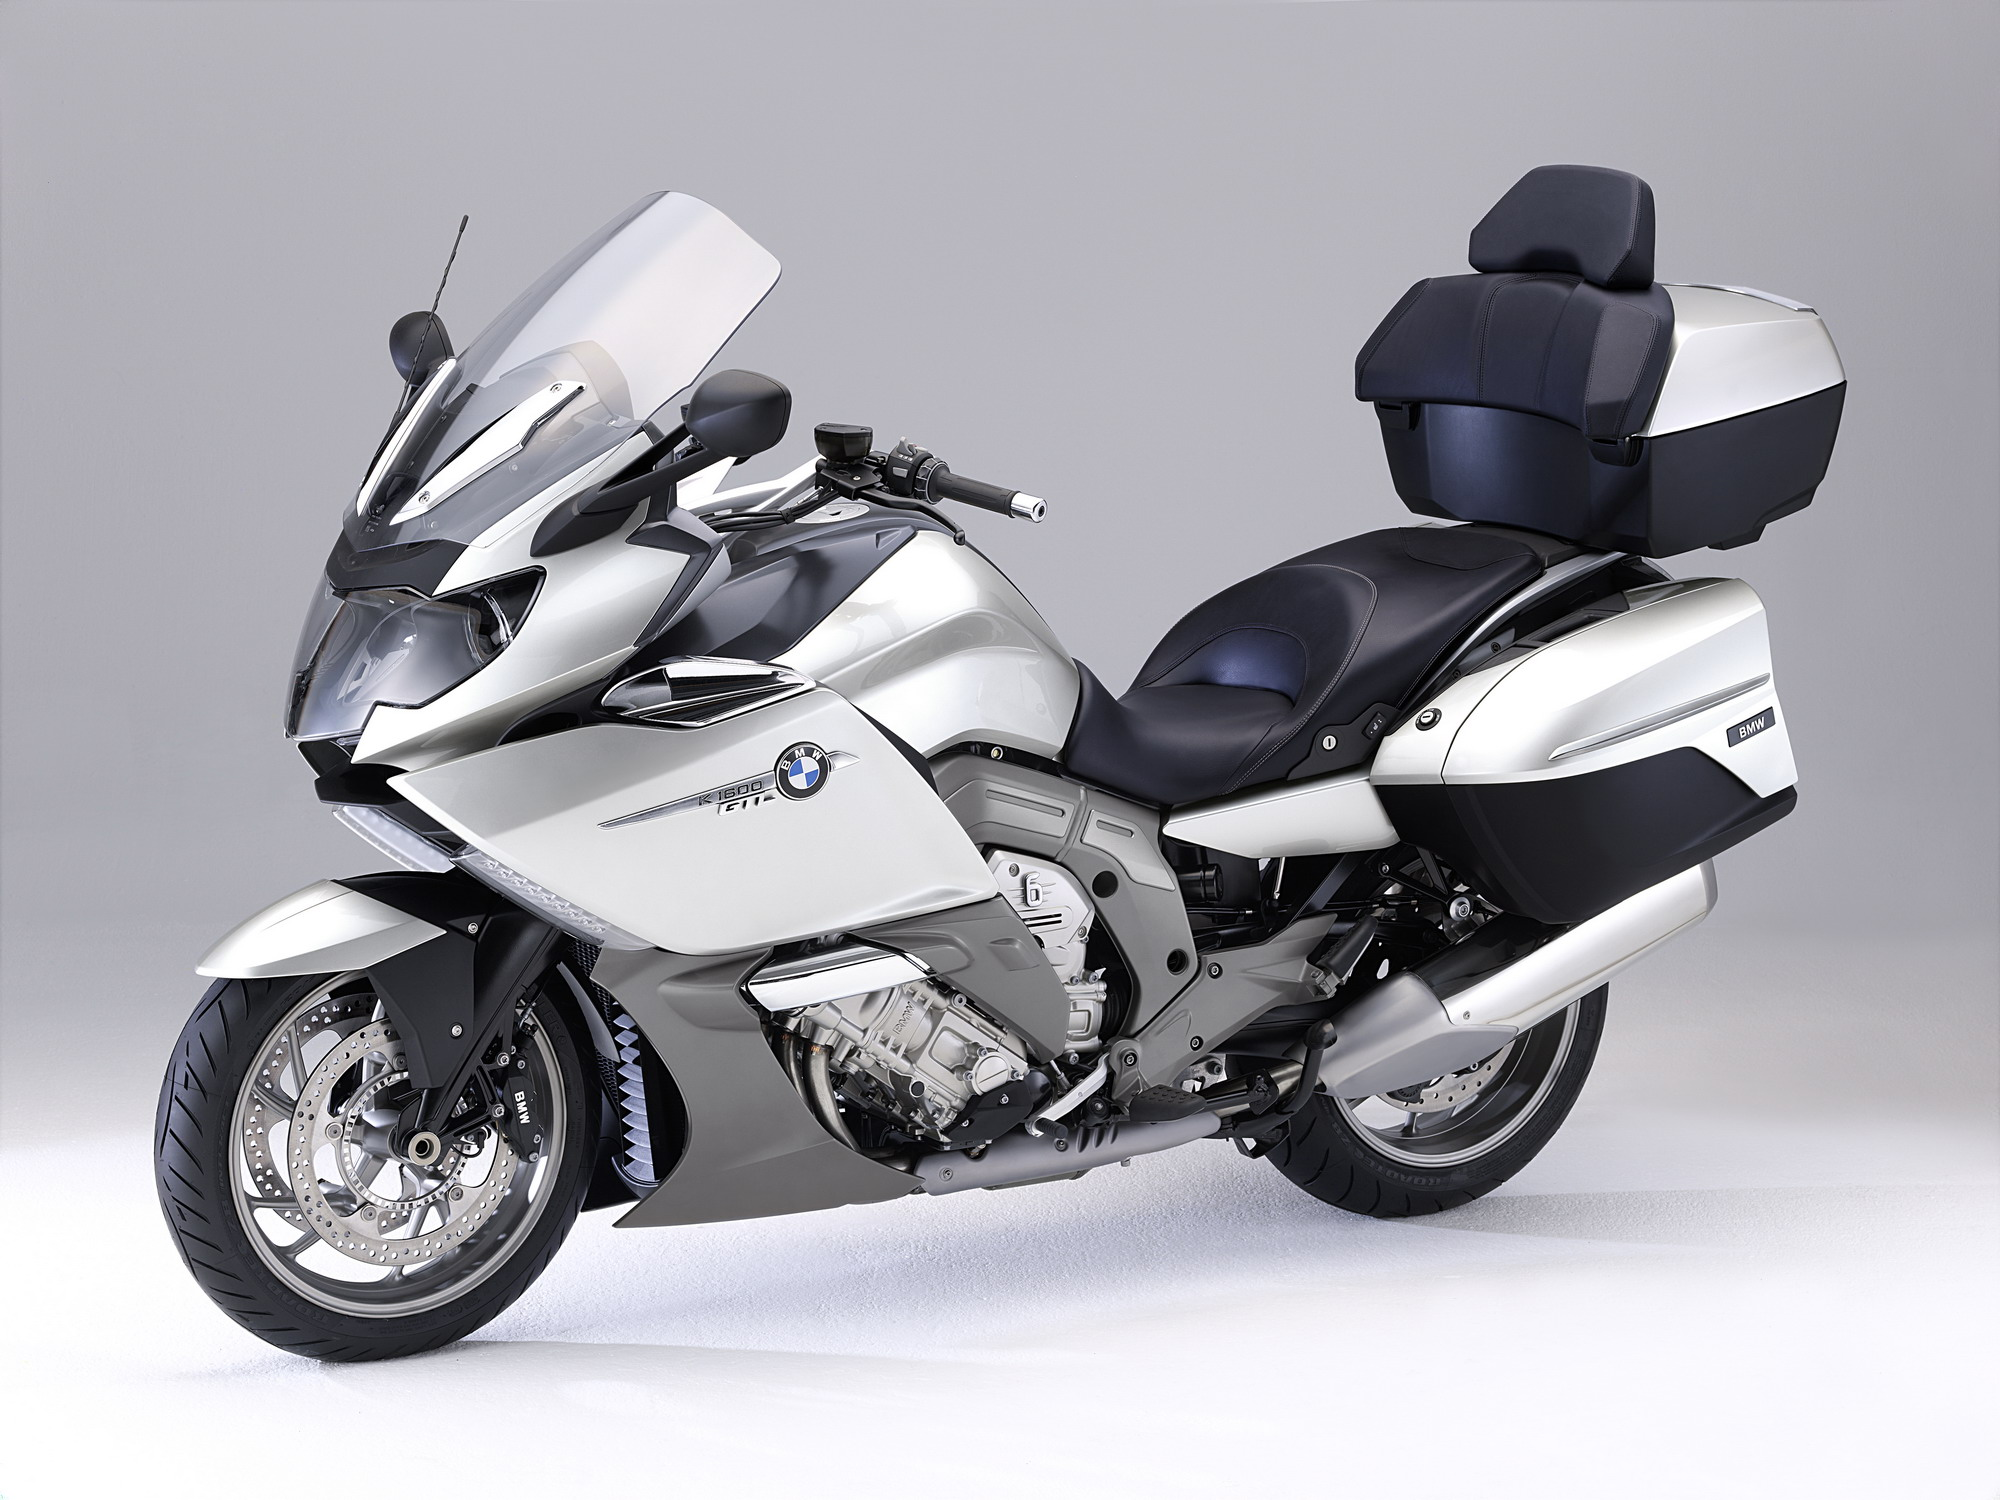 2012 bmw k 1600 gt and k 1600 gtl gallery 376643 top speed. Black Bedroom Furniture Sets. Home Design Ideas